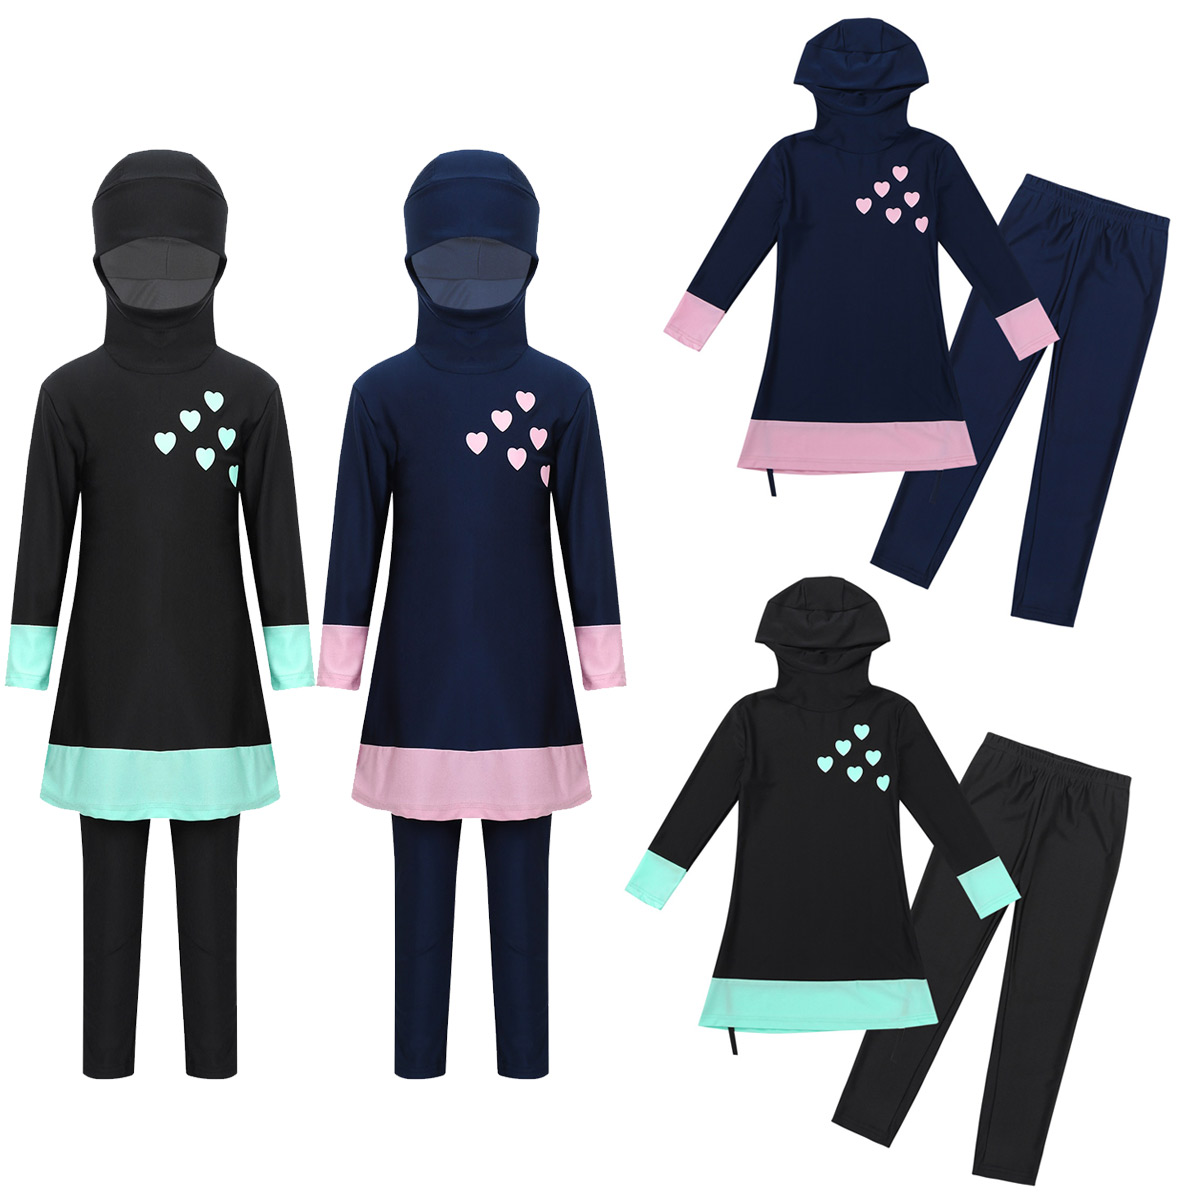 Image 2 - Kids Girls Long Sleeves Sweetheart Printed Full Cover Conservative Hijab Burkini Muslim Girls Kid Swimwear Swimsuit with Pants-in Clothing Sets from Mother & Kids